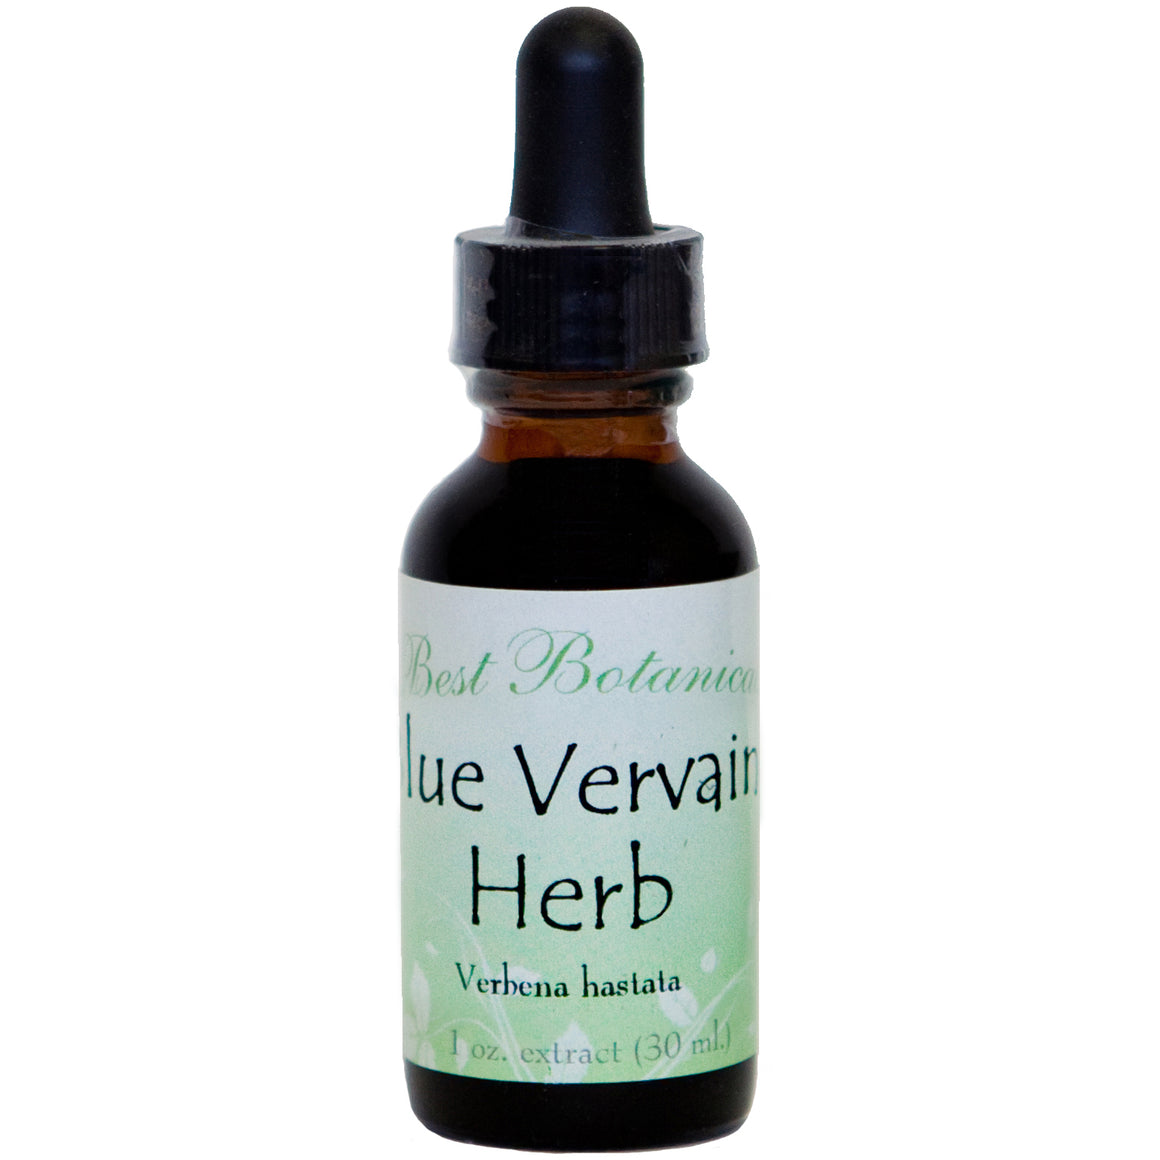 Blue Vervain Herb Extract